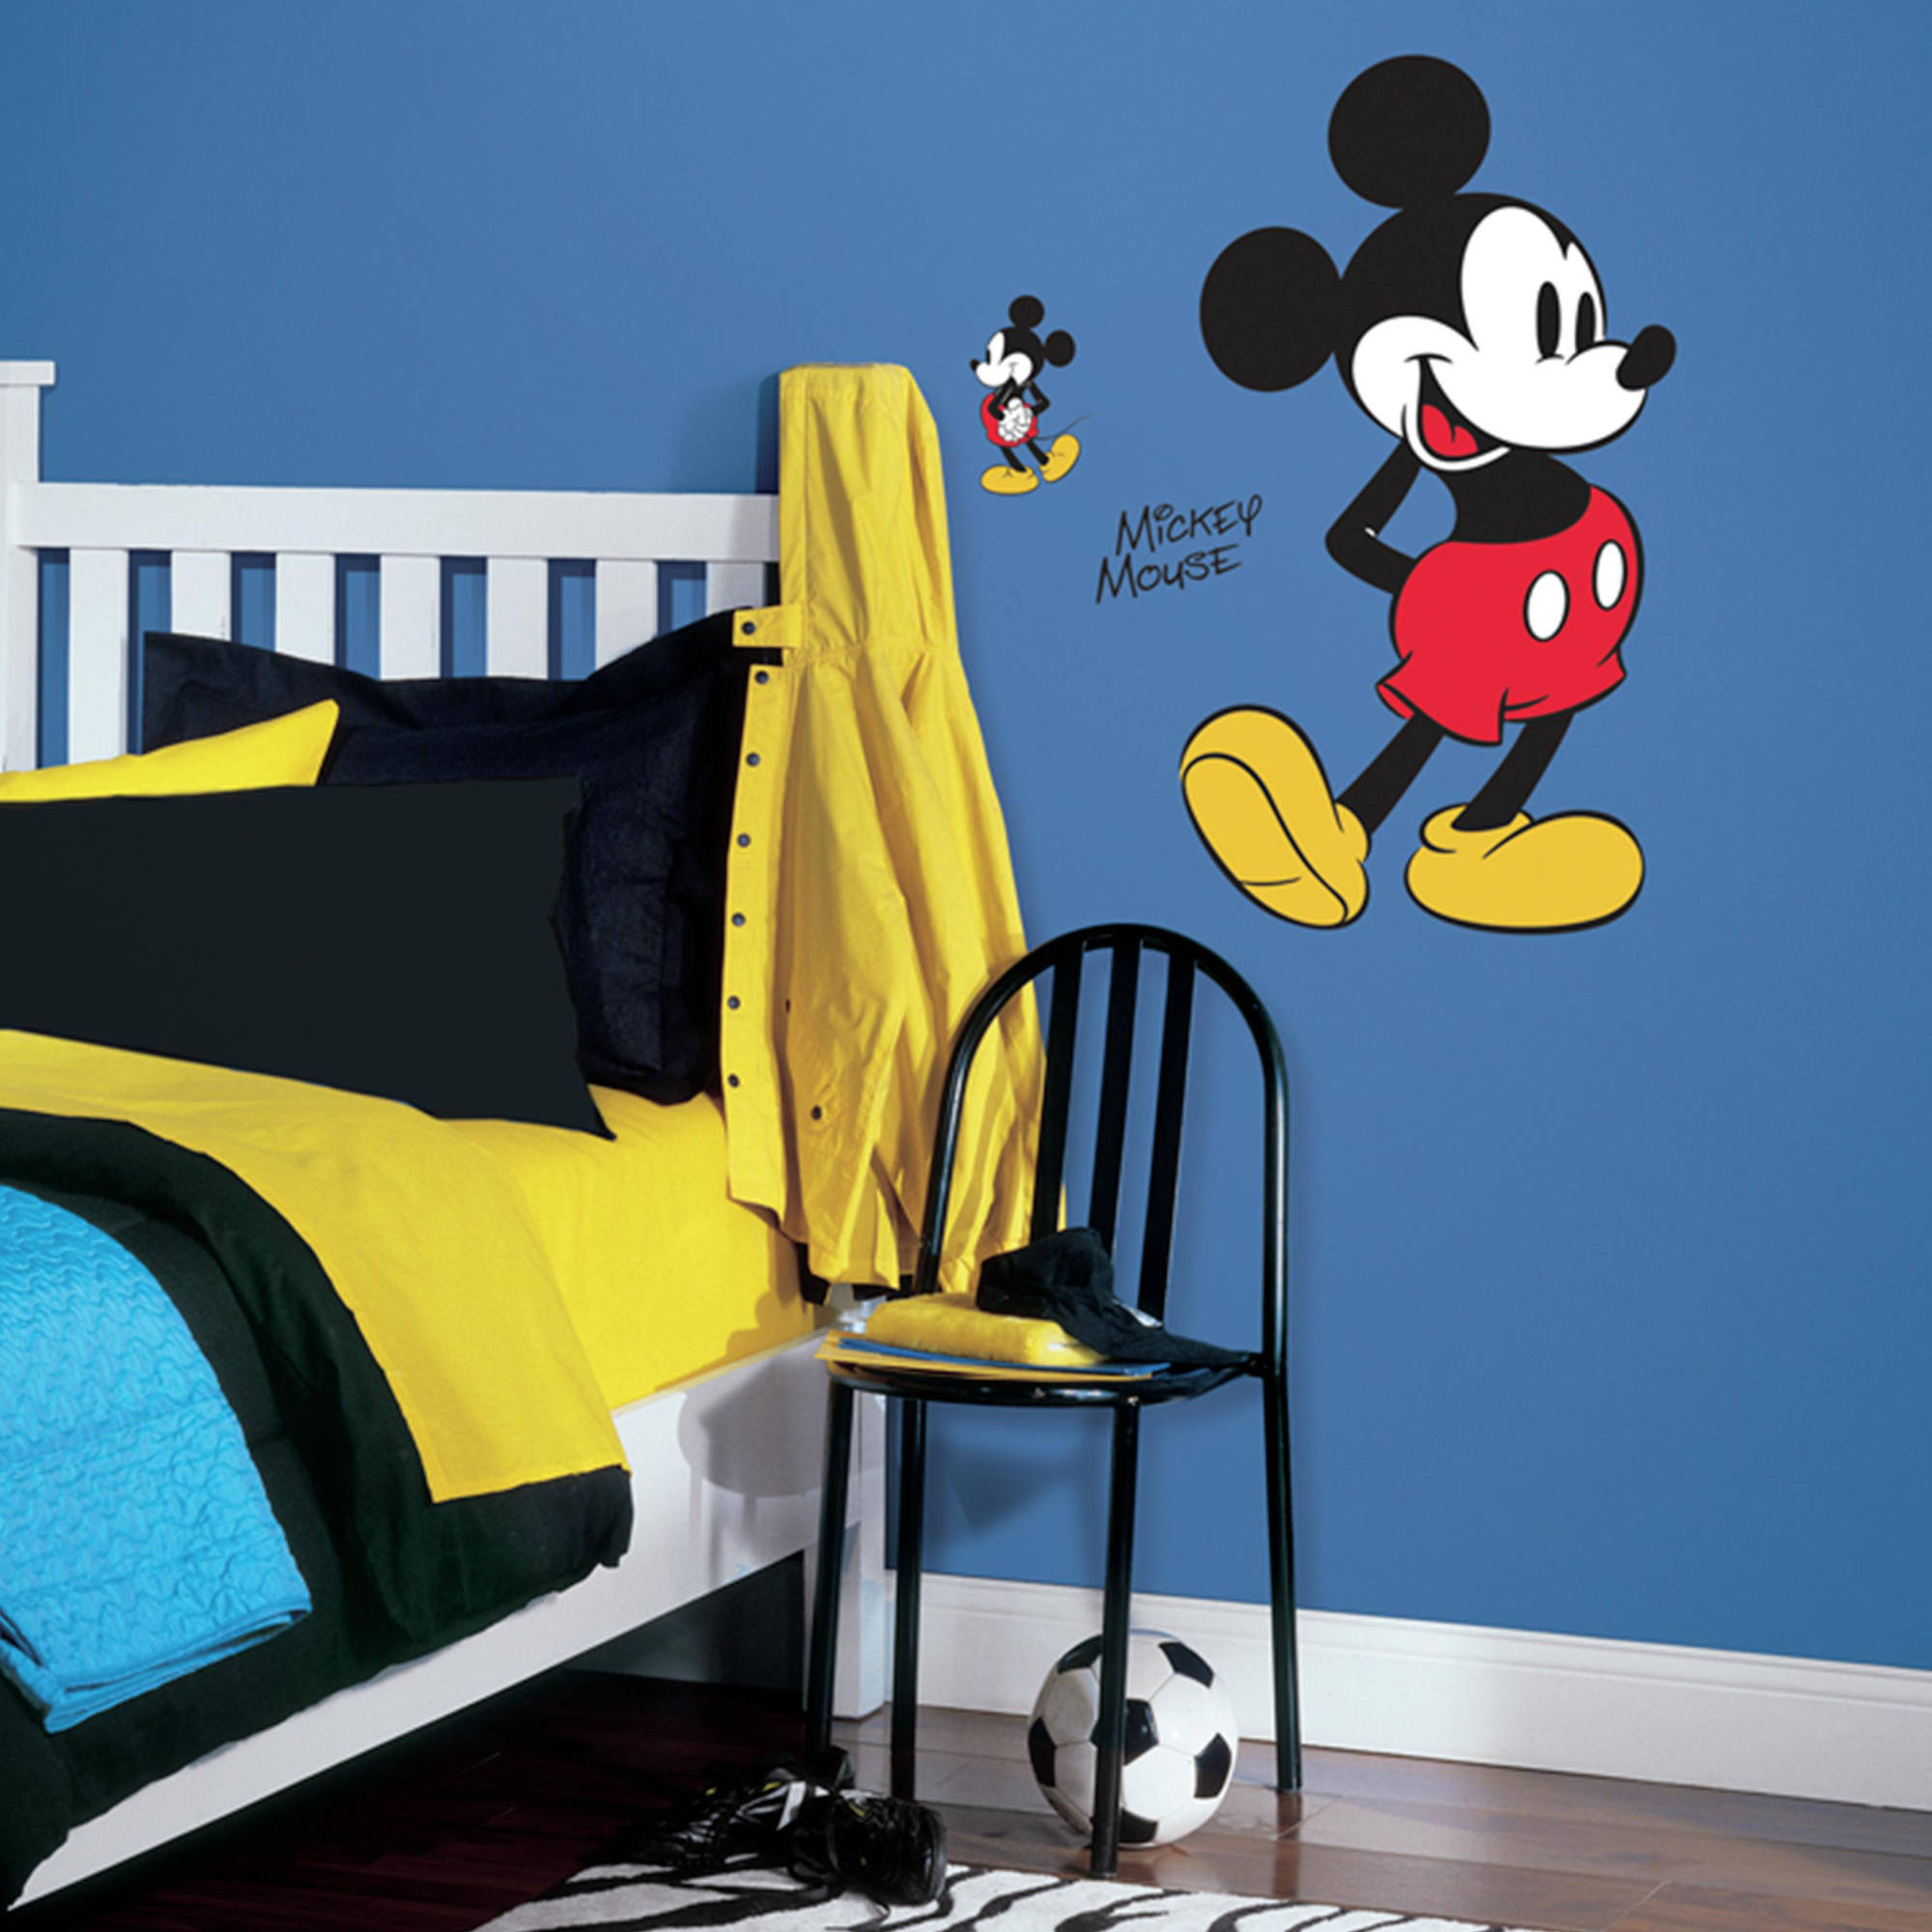 RoomMates Decor Mickey Mouse Peel-and-Stick Giant Wall Decals